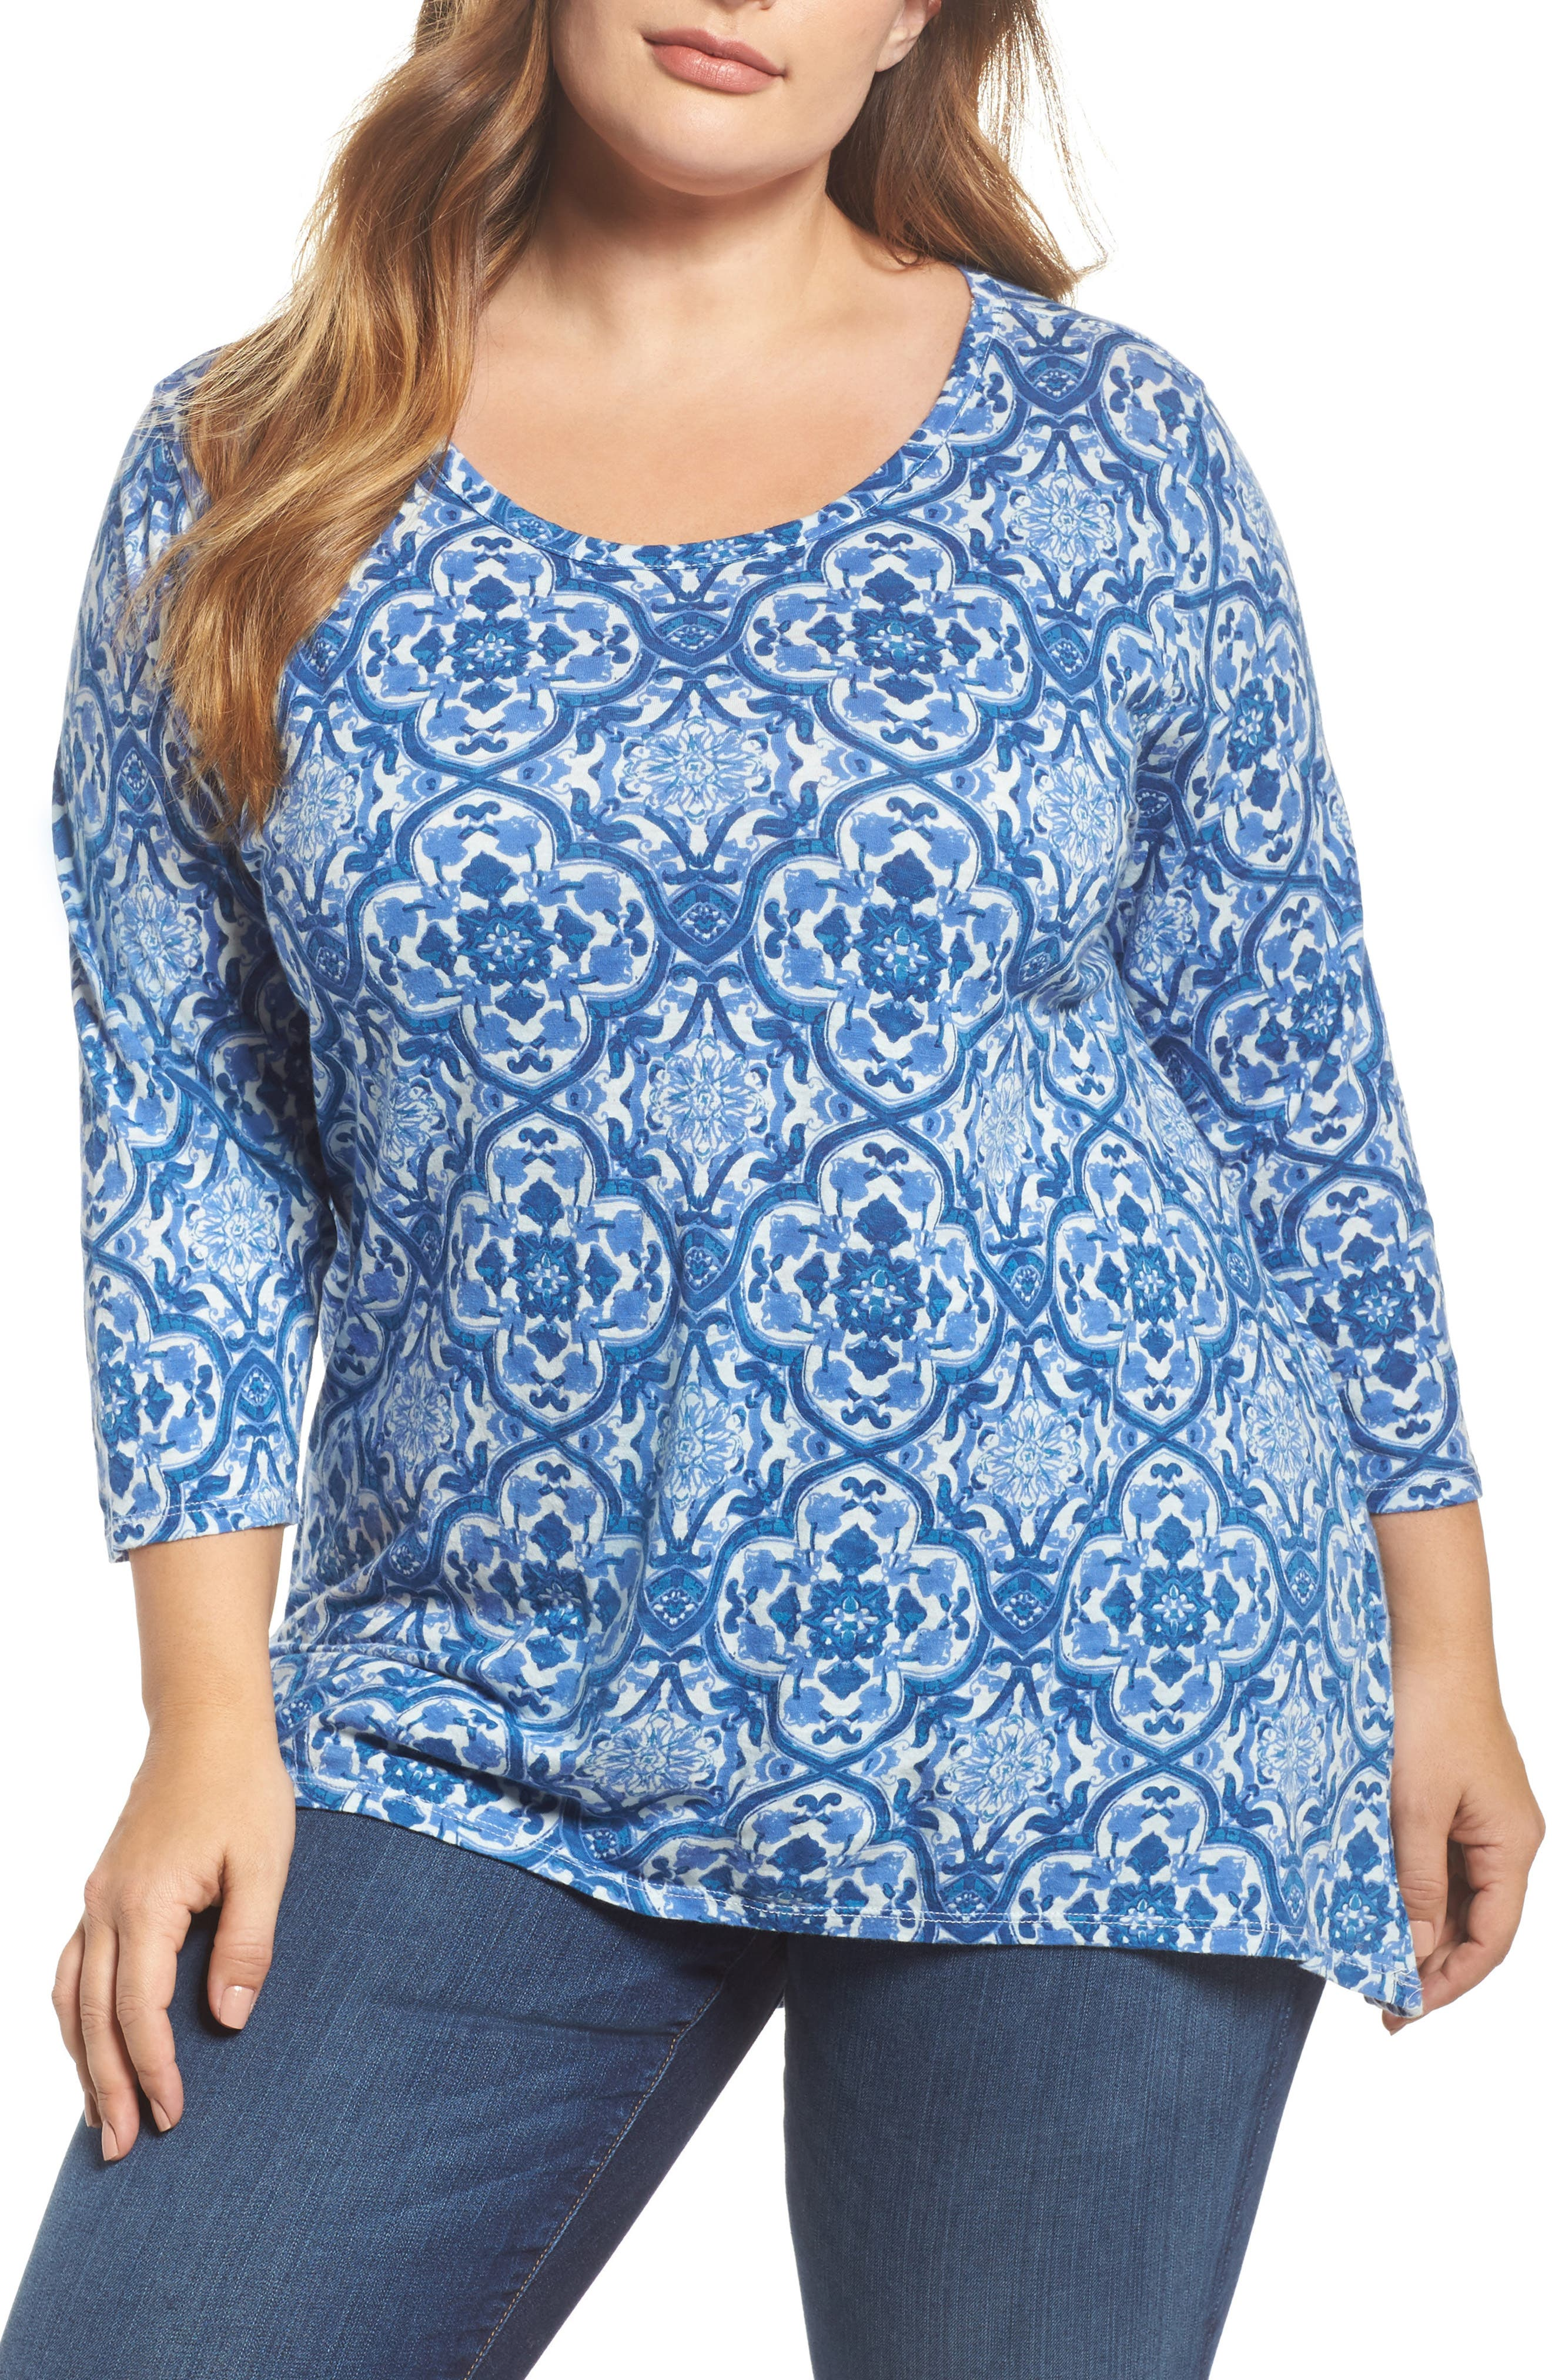 Alternate Image 1 Selected - Lucky Brand Tile Print Top (Plus Size)